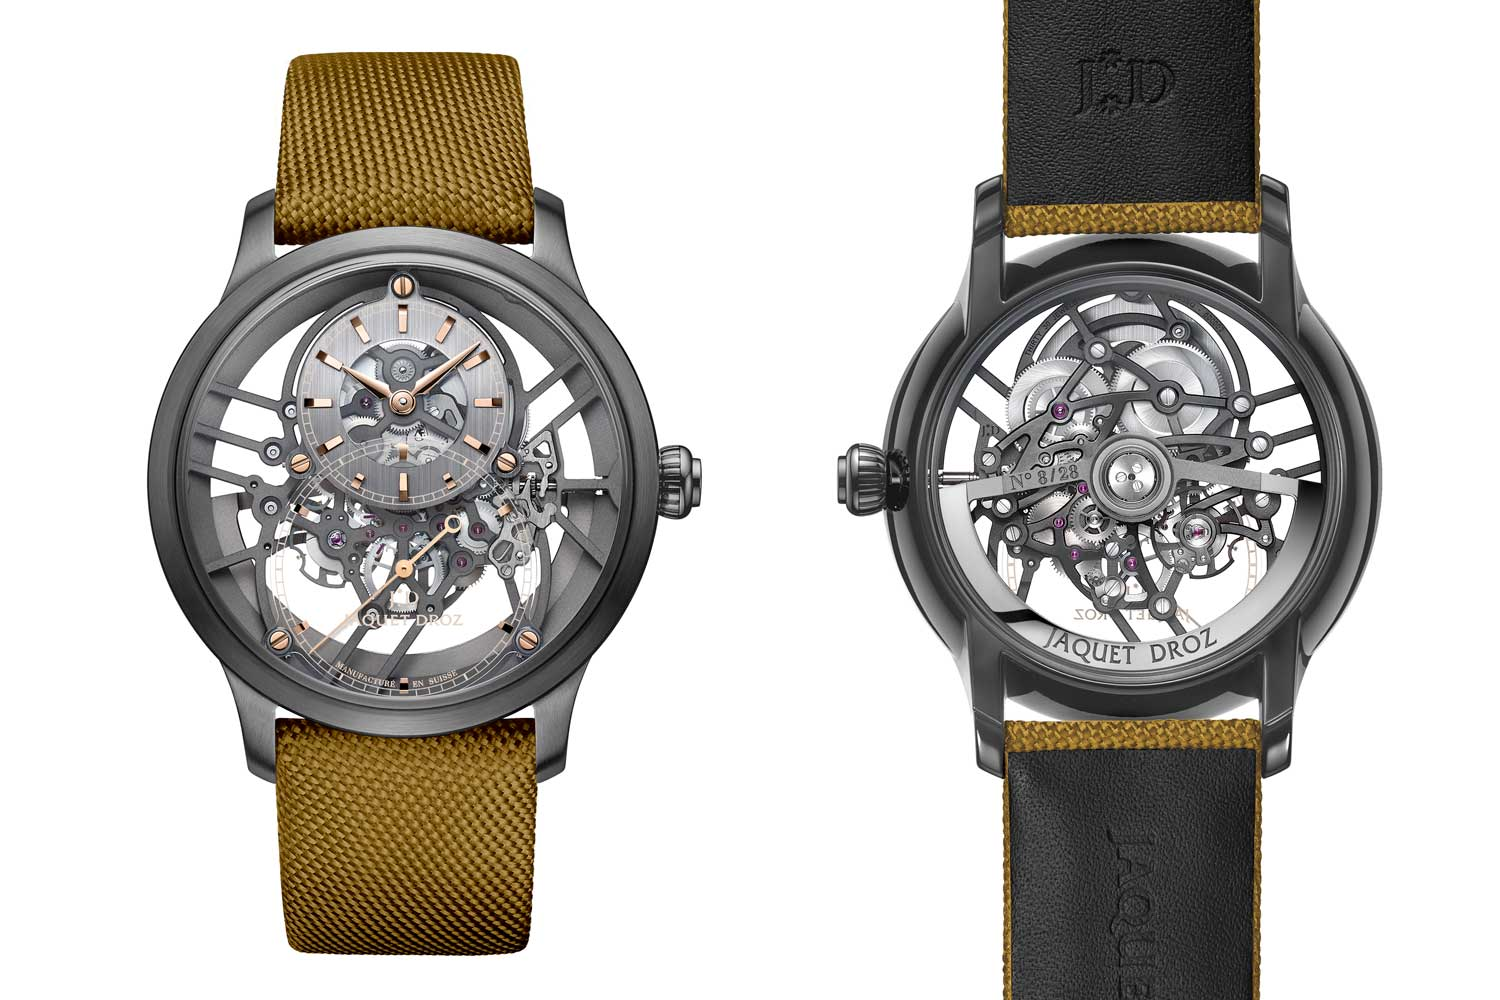 The Grande Skelet One plasma ceramic yellow has a warmer hue because of the red gold screws and indexes on the dial